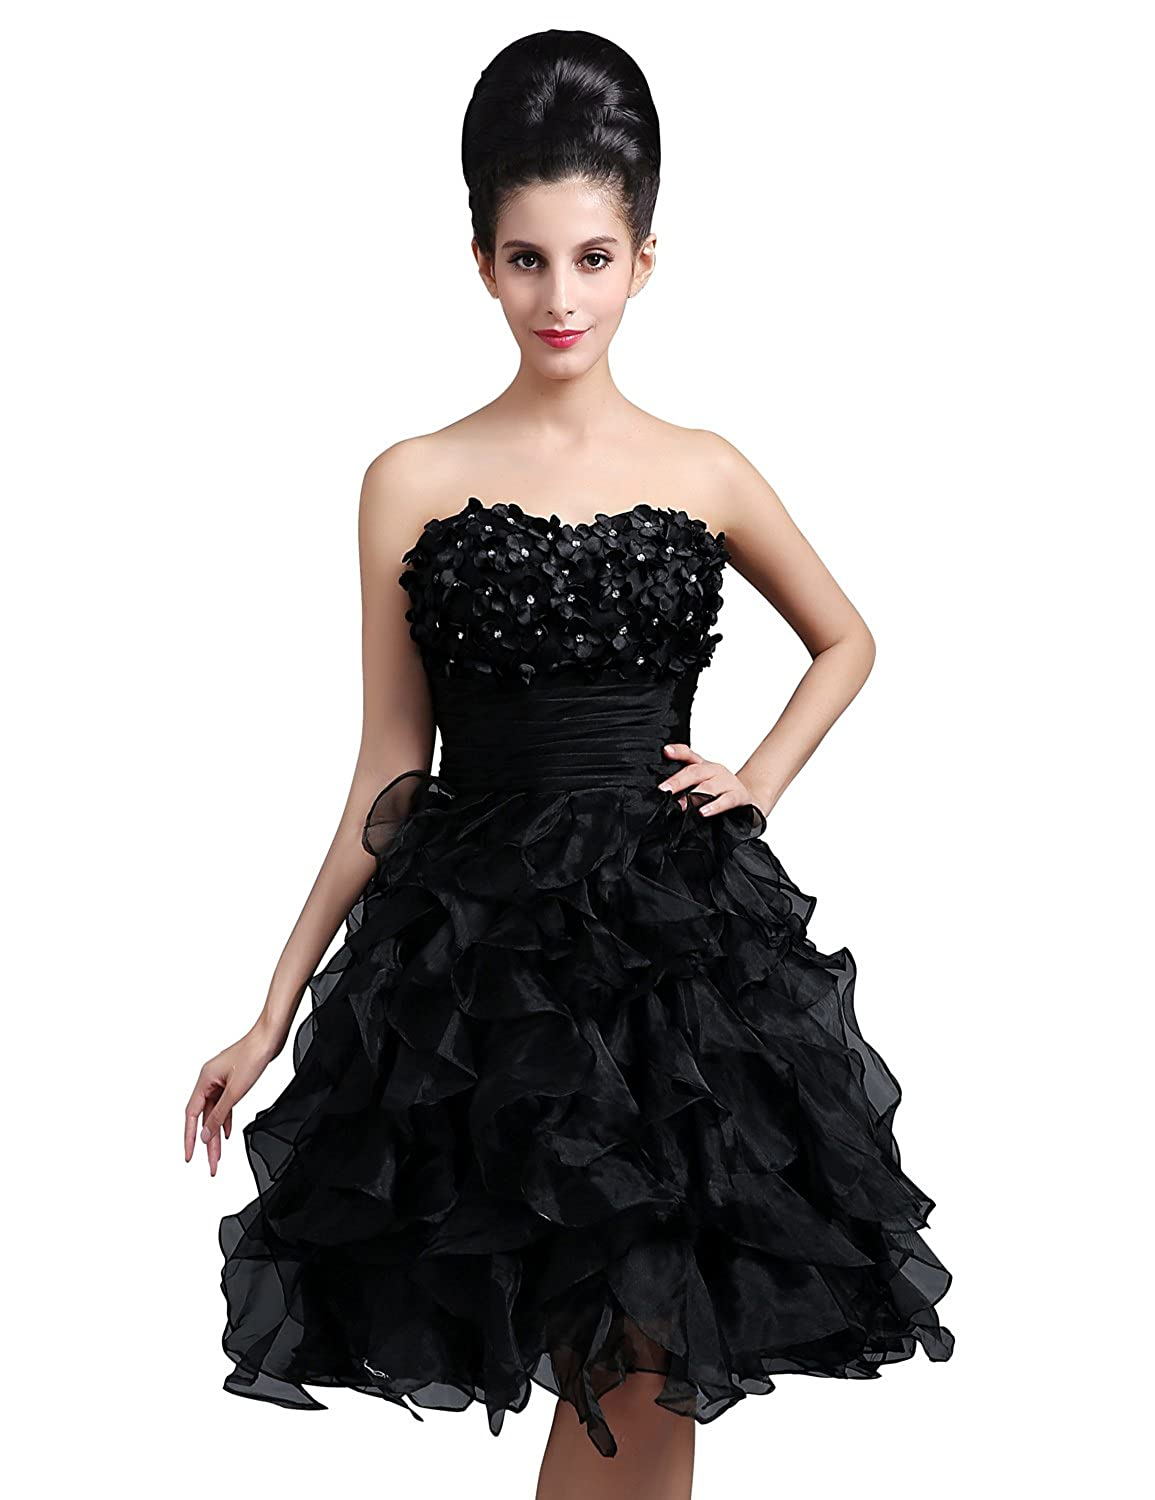 Clearbridal Women's Black Organza Short Party Cocktail Dress Sweetheart Prom Gowns with Hand Made Flower